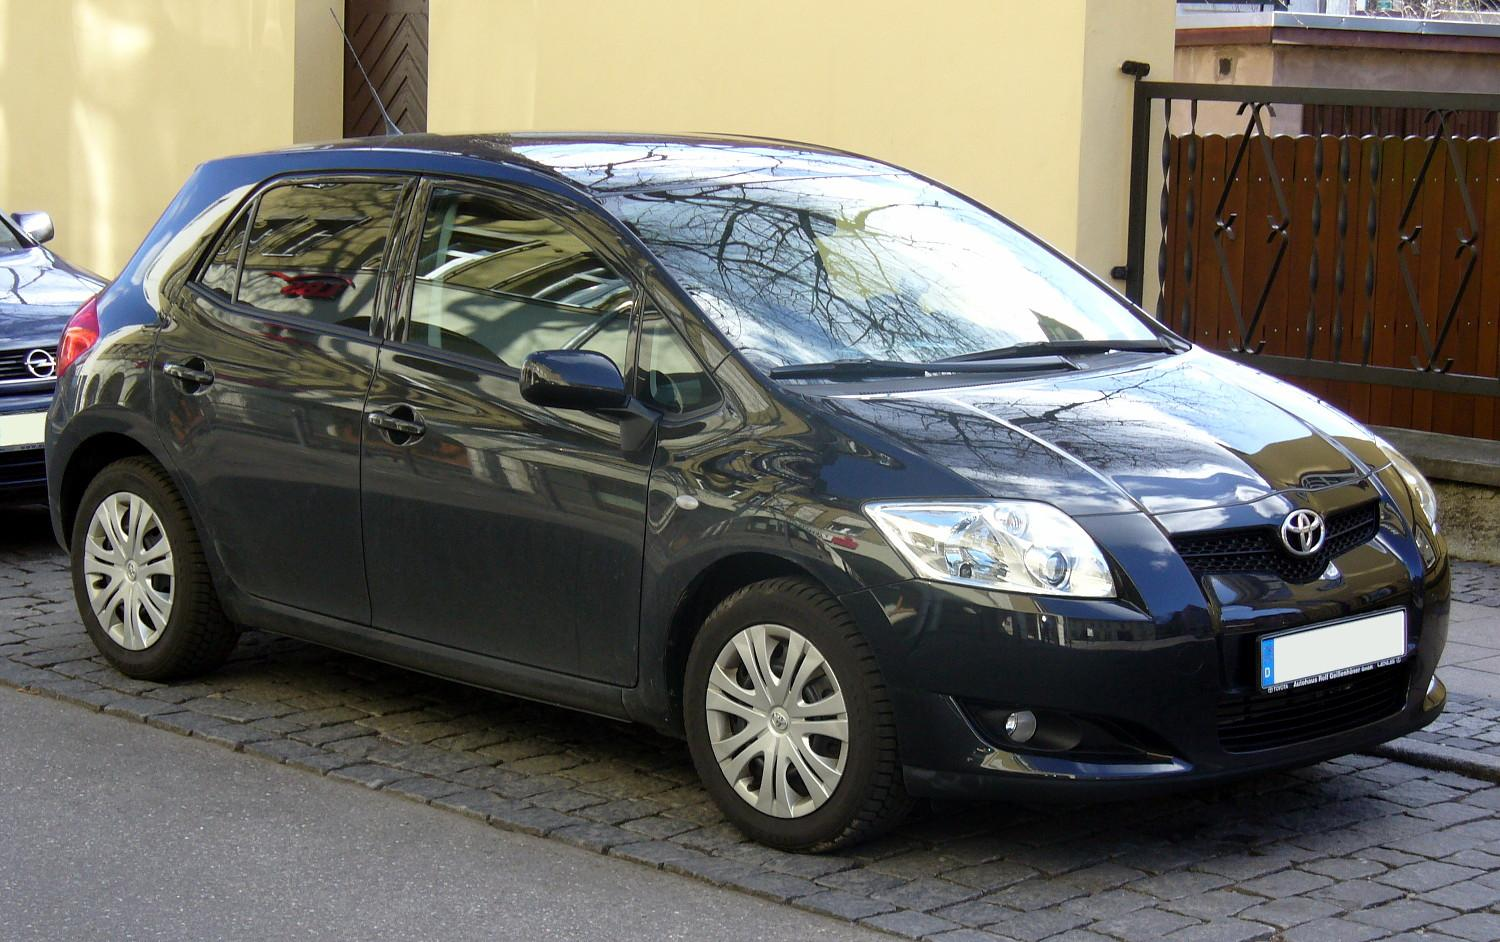 file toyota auris black jpg wikimedia commons. Black Bedroom Furniture Sets. Home Design Ideas